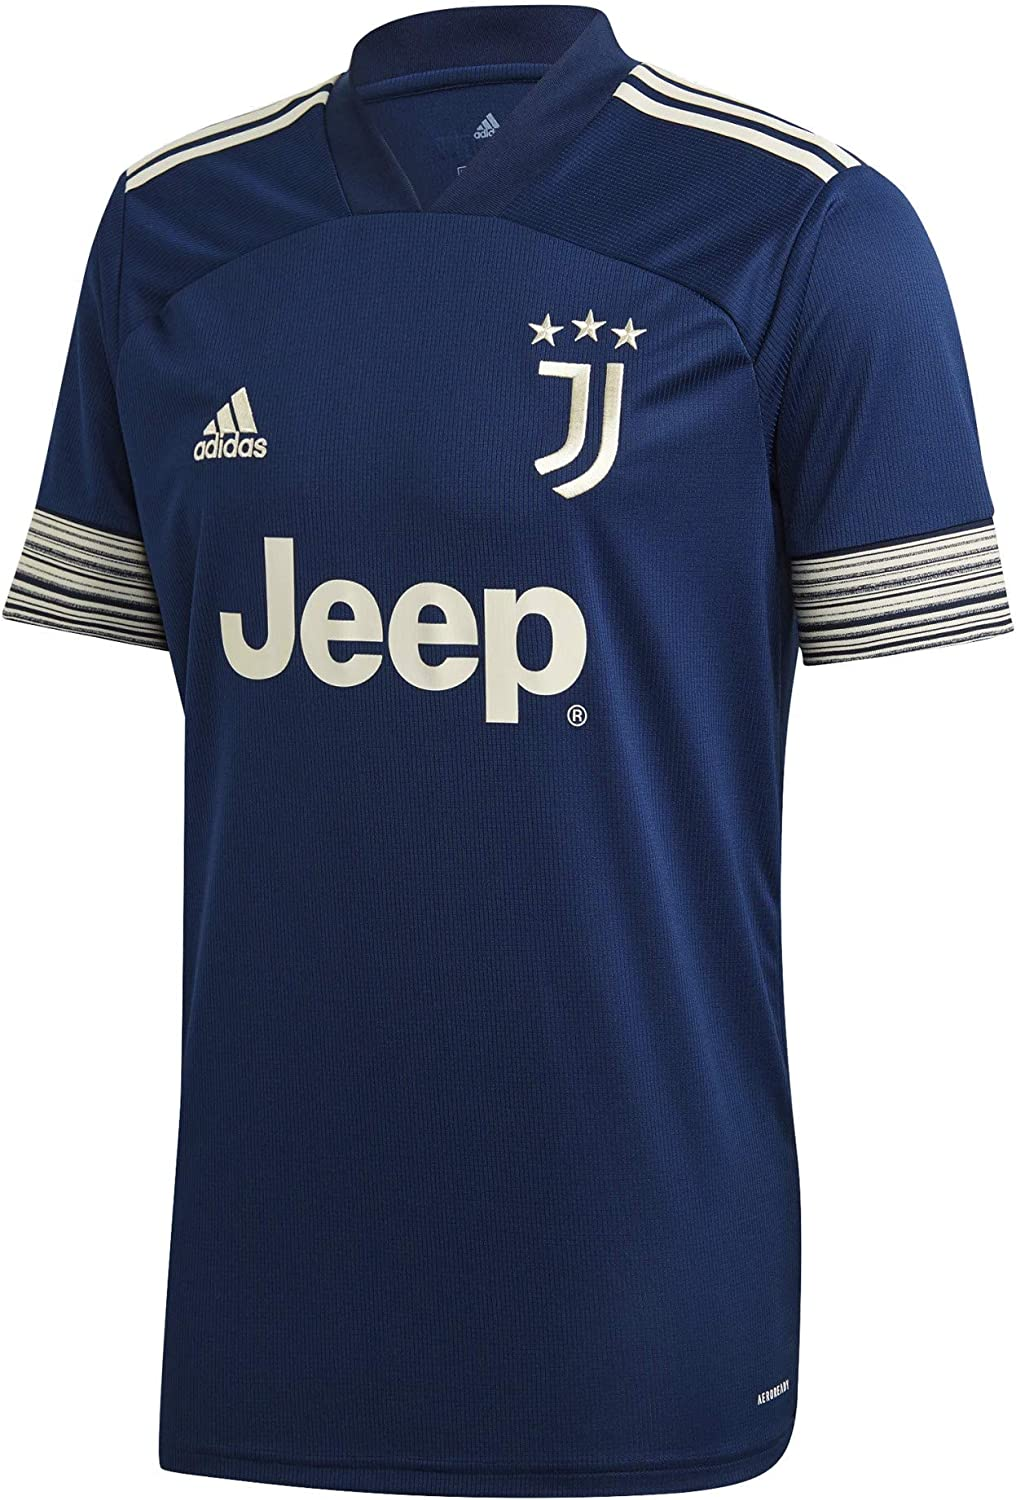 amazon com adidas juventus fc mens away soccer jersey 2020 21 clothing adidas juventus fc mens away soccer